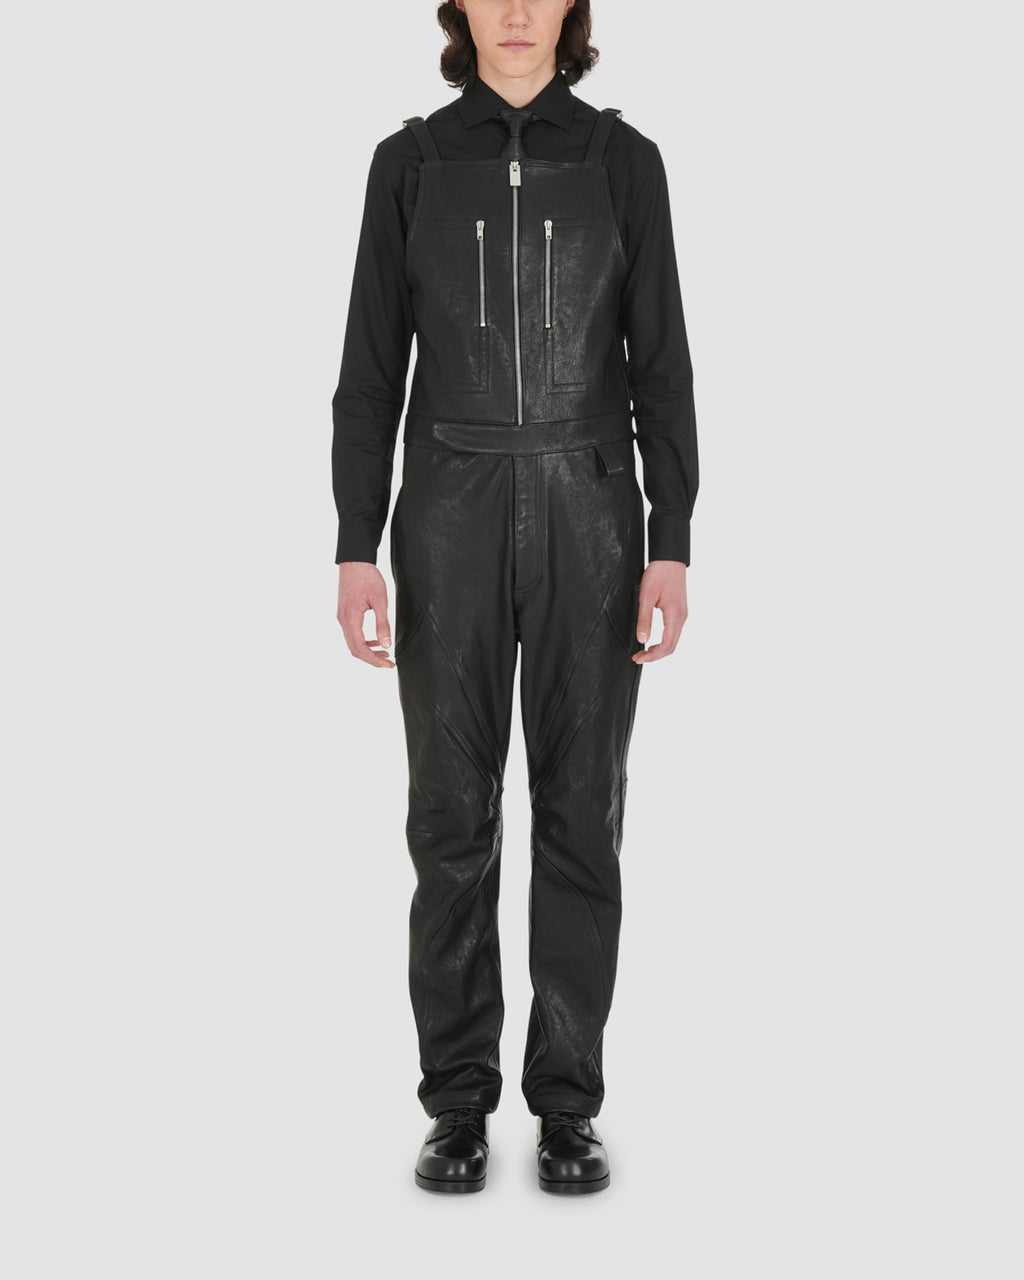 LEATHER FUORIPISTA OVERALL RUNWAY MADE TO ORDER